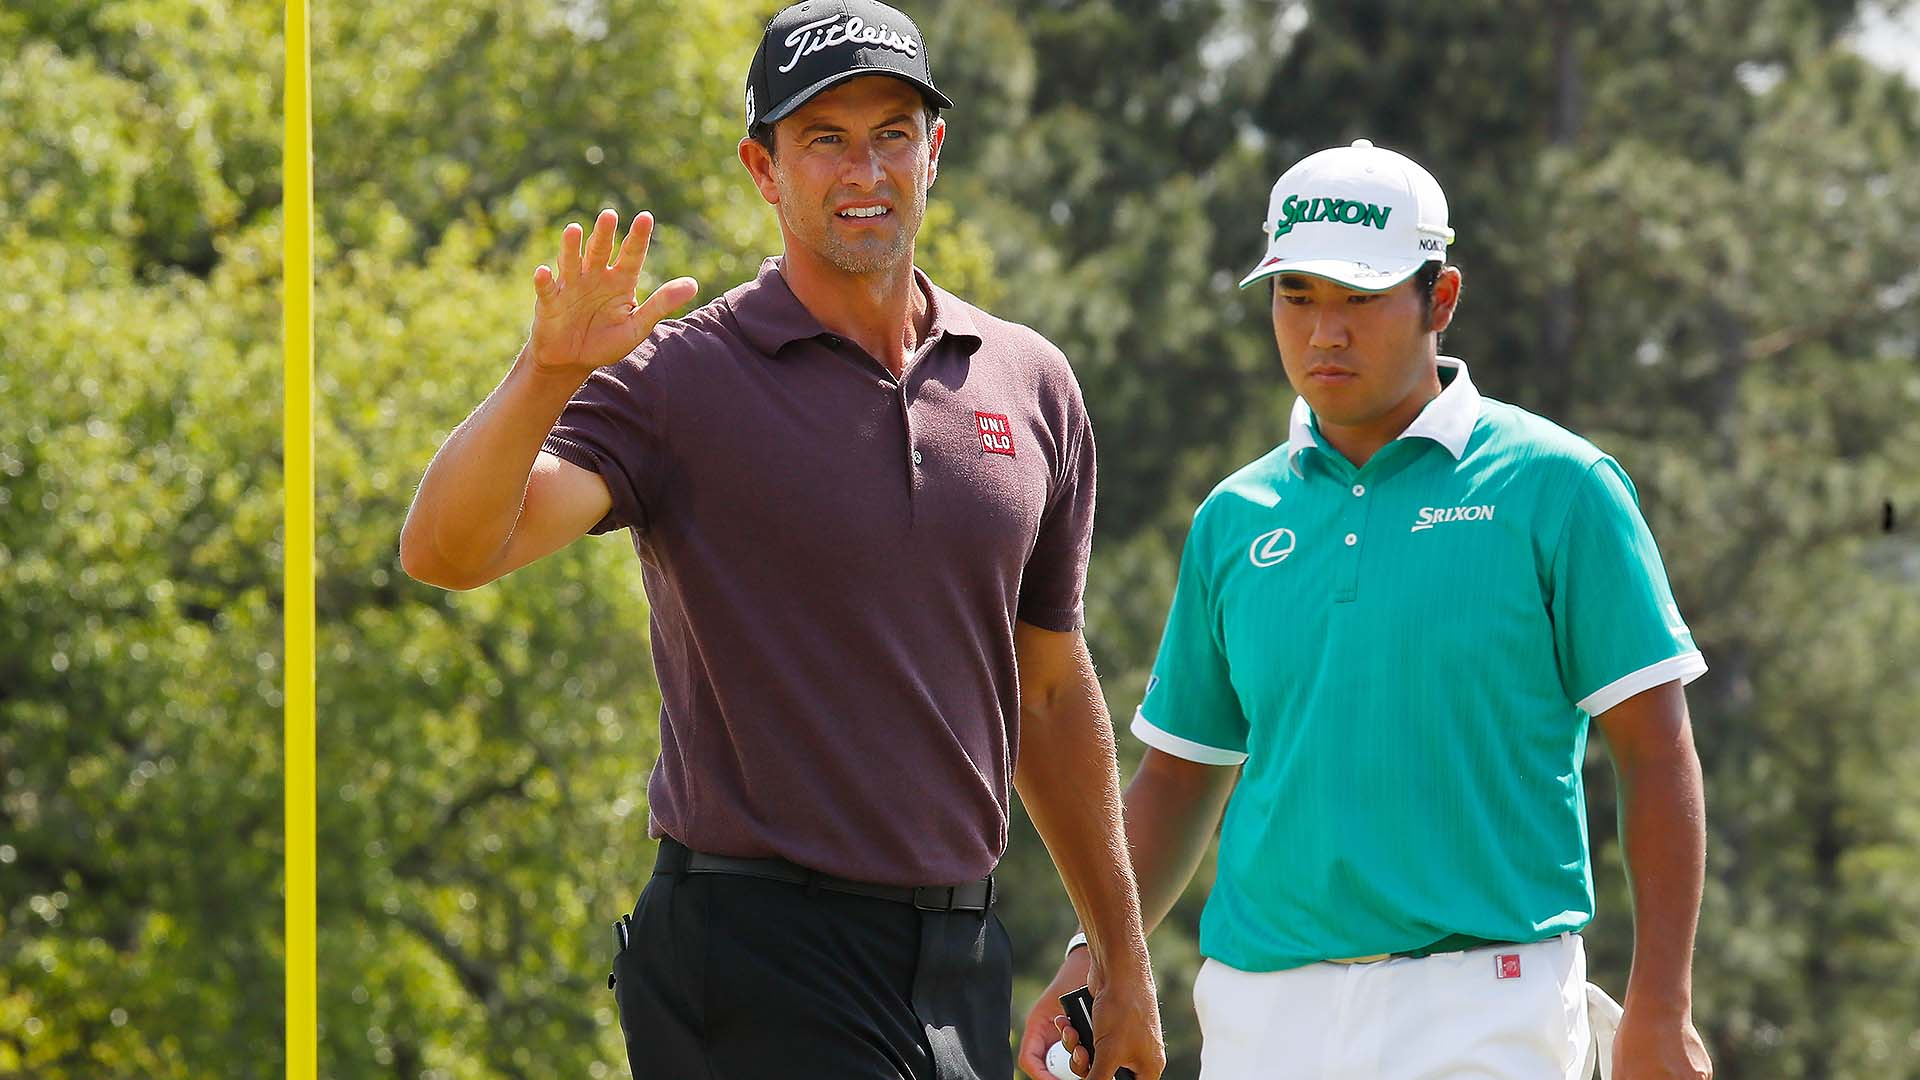 2019 Masters: Bad Look Or Not, Scott (69) Putting With Pin